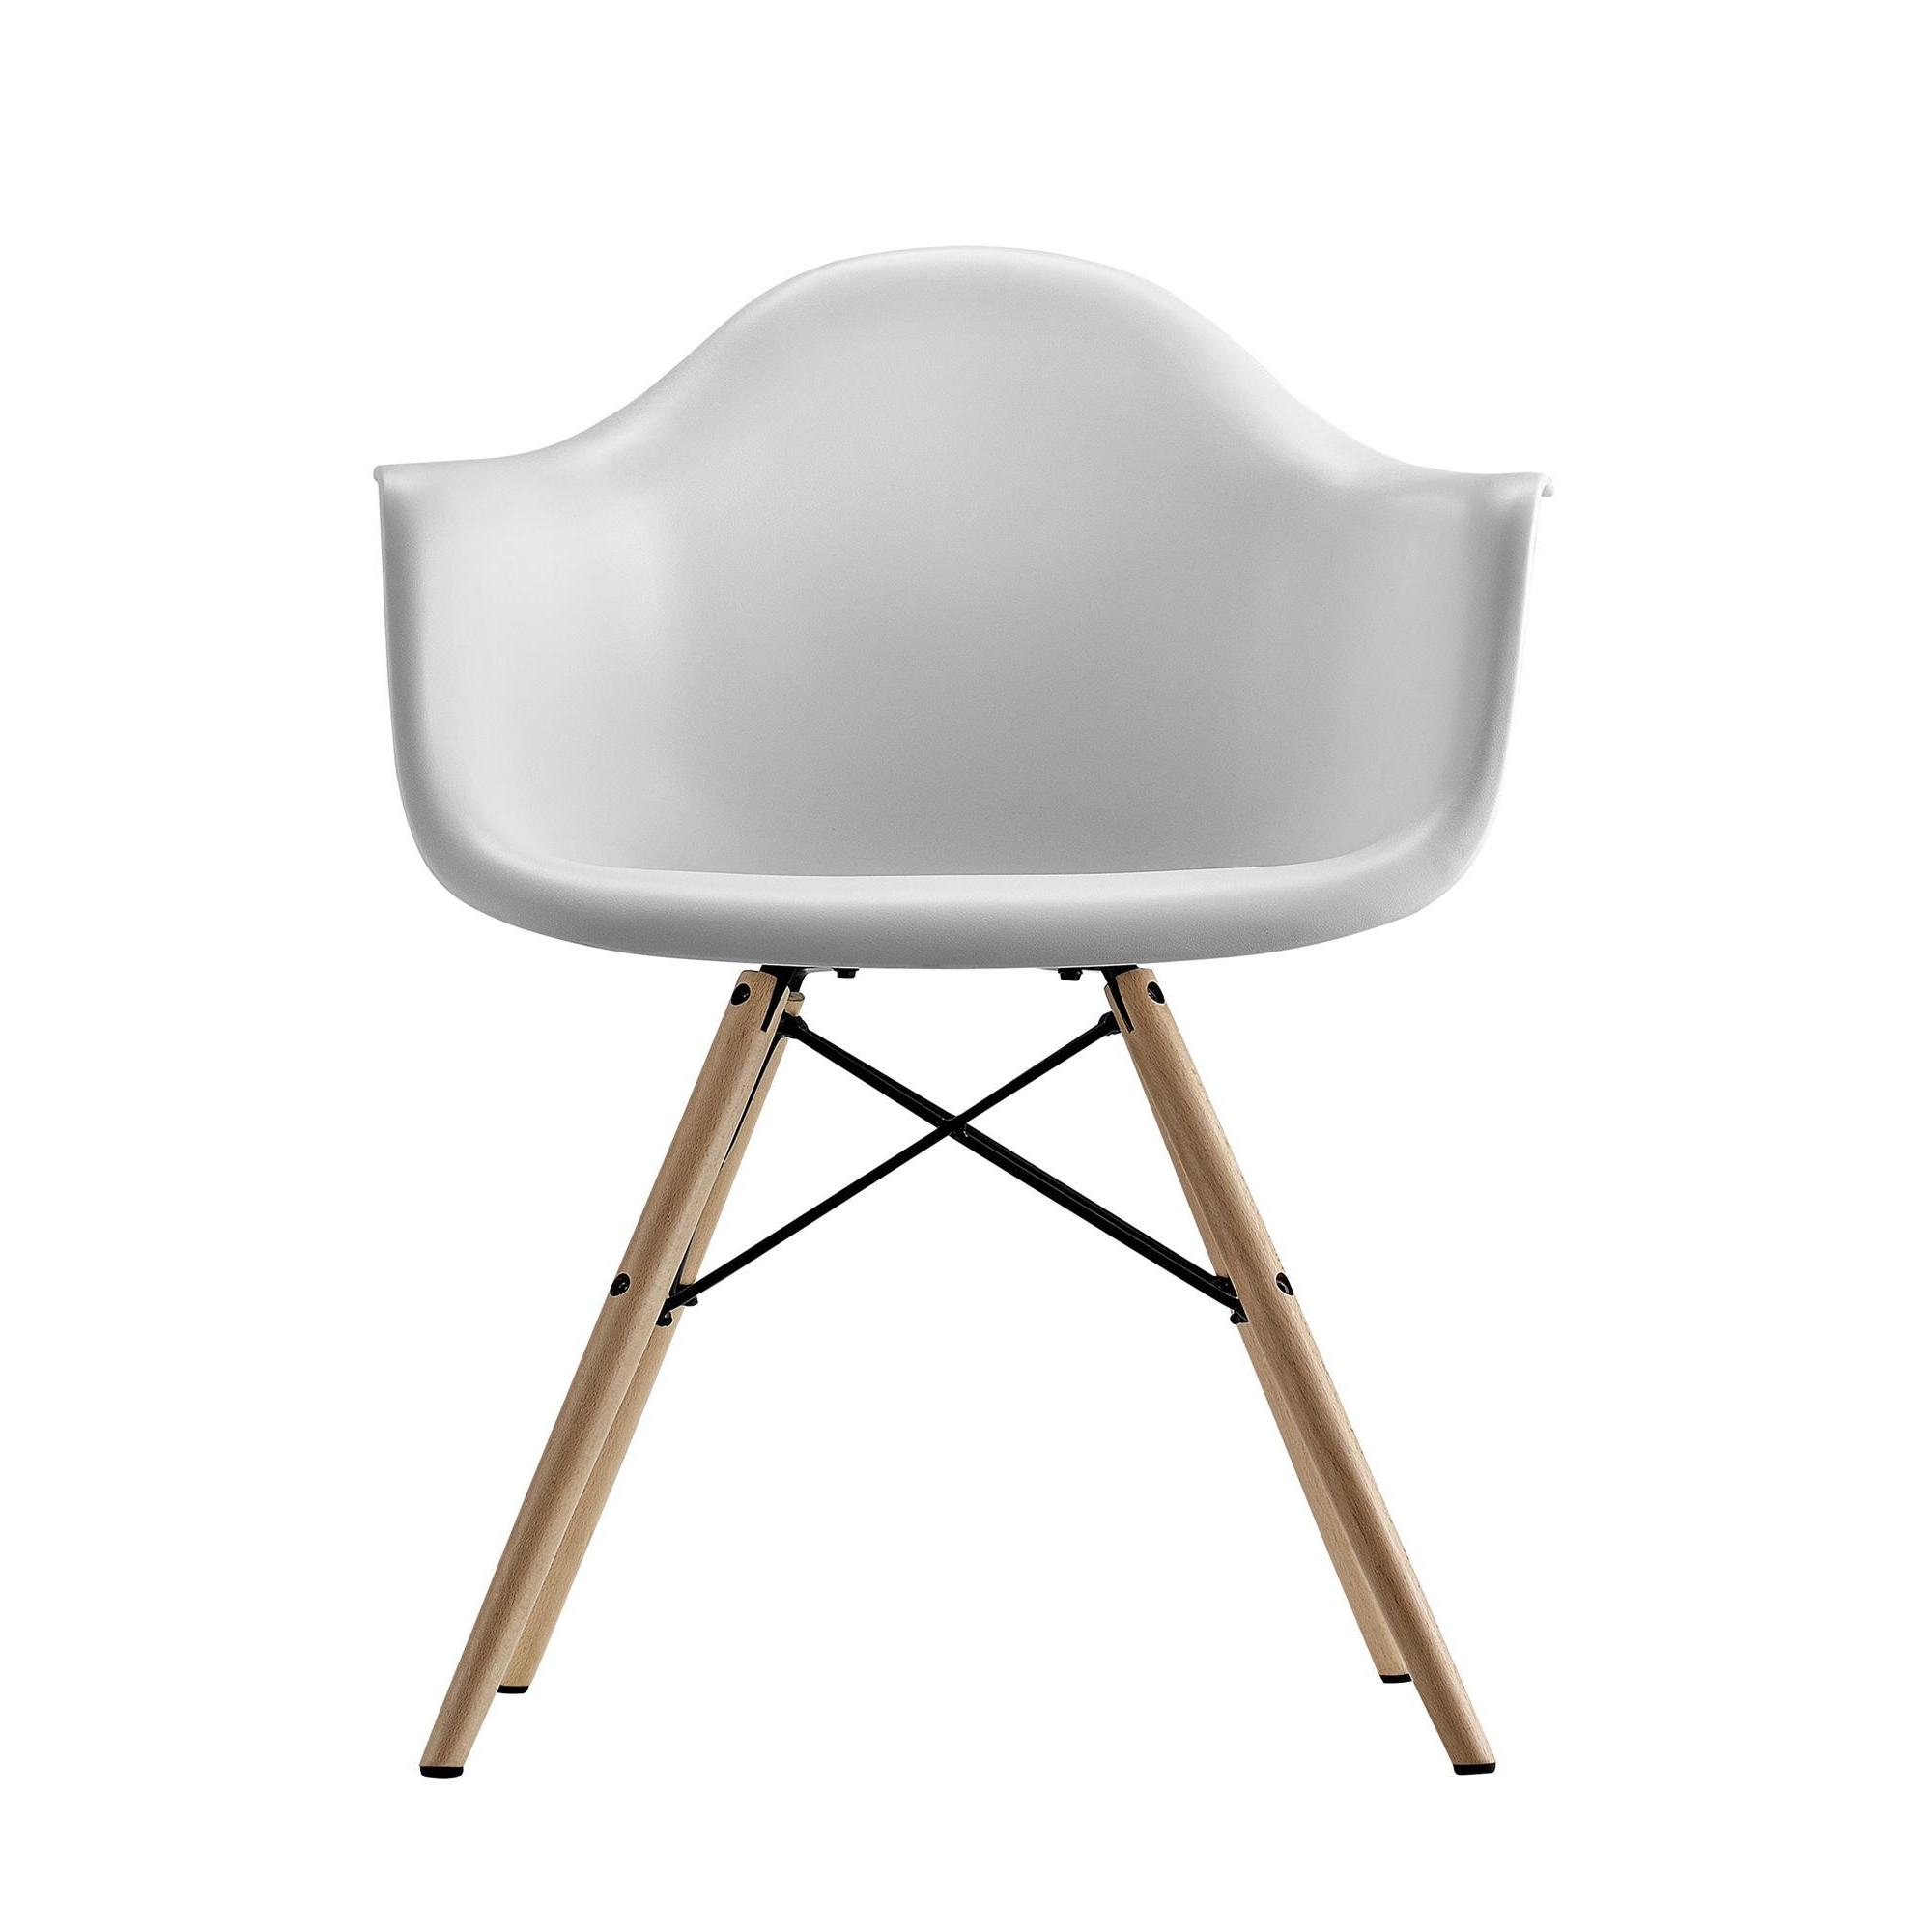 DHP Mid Century Modern Molded White Arm Chair with Wood L...